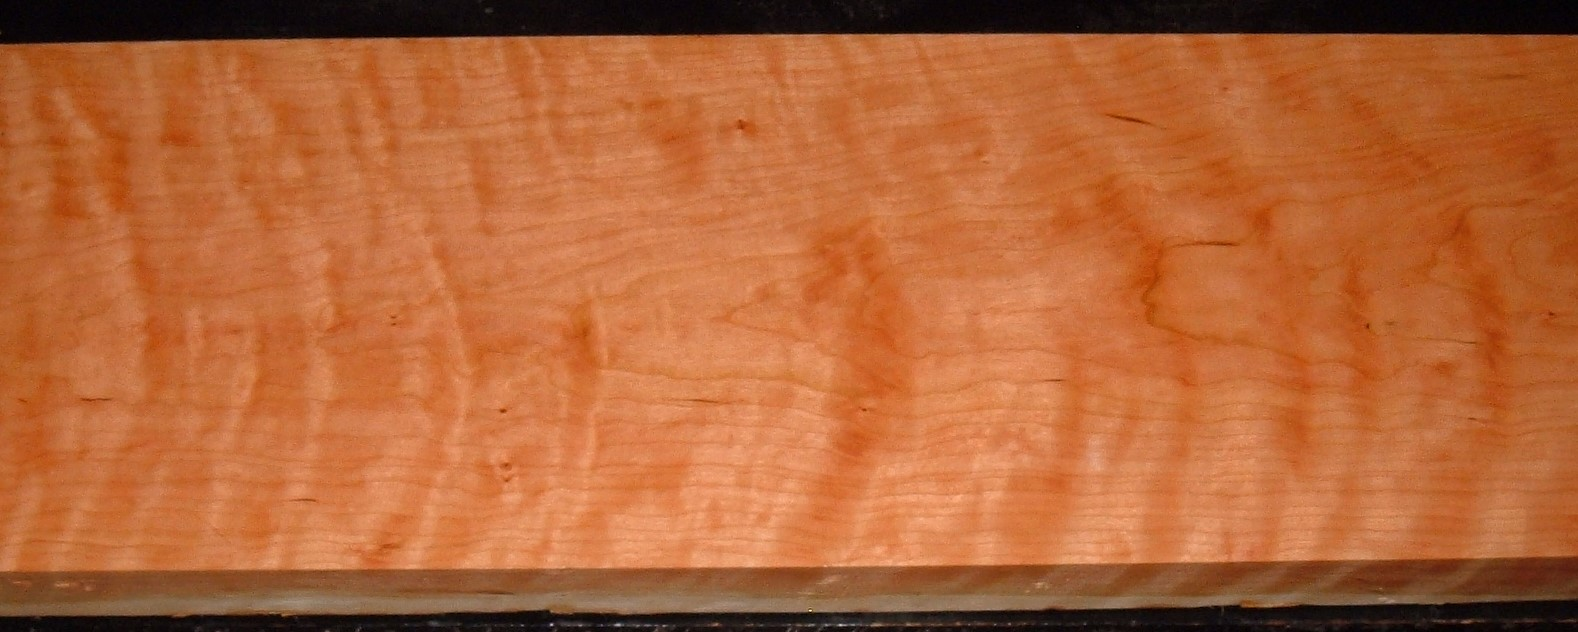 C2006-119JJ, 1-3/4x9-1/2x62, Curly Figured Cherry